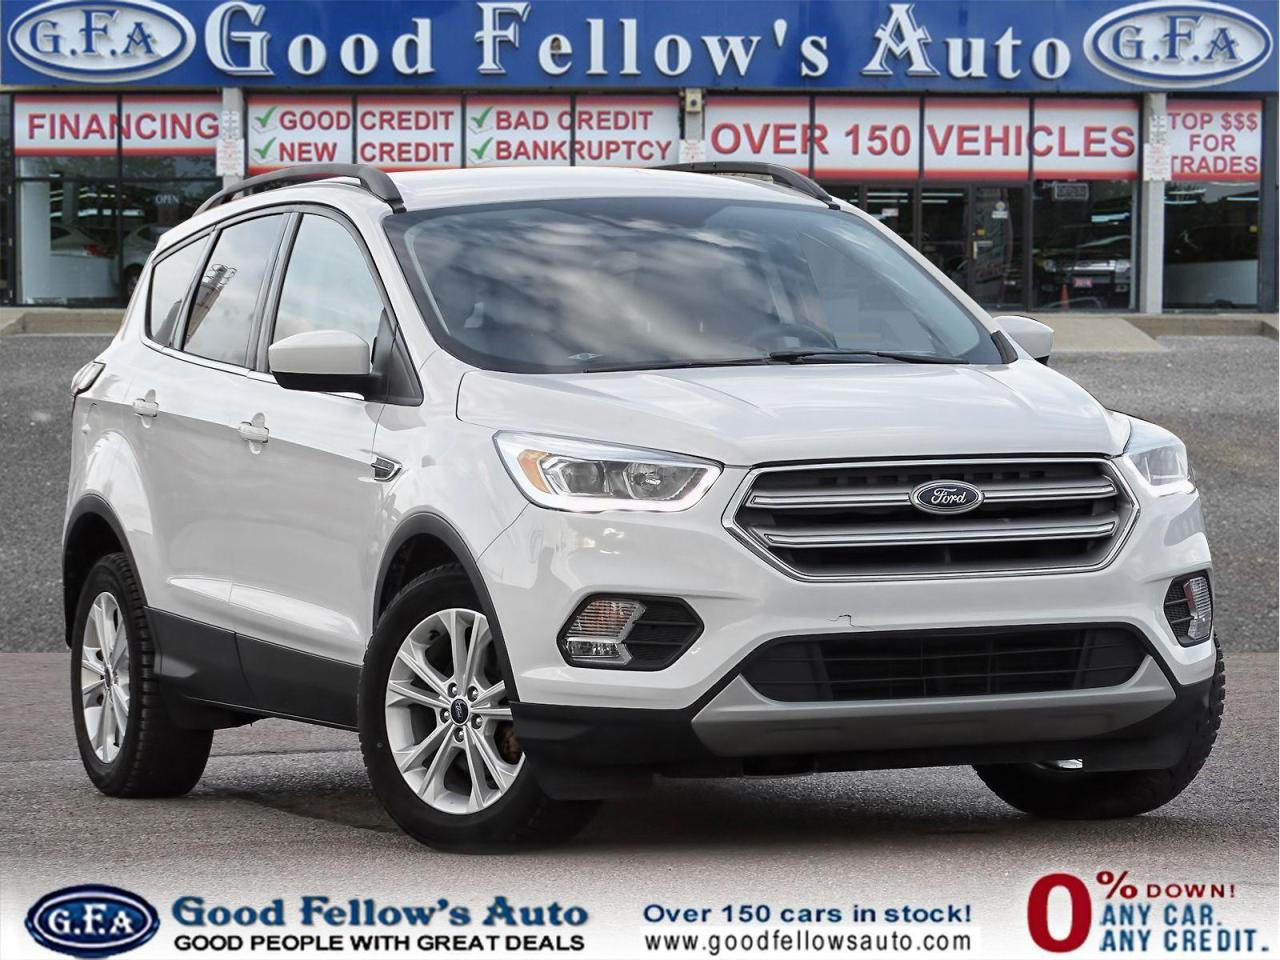 used 2017 Ford Escape car, priced at $12,400